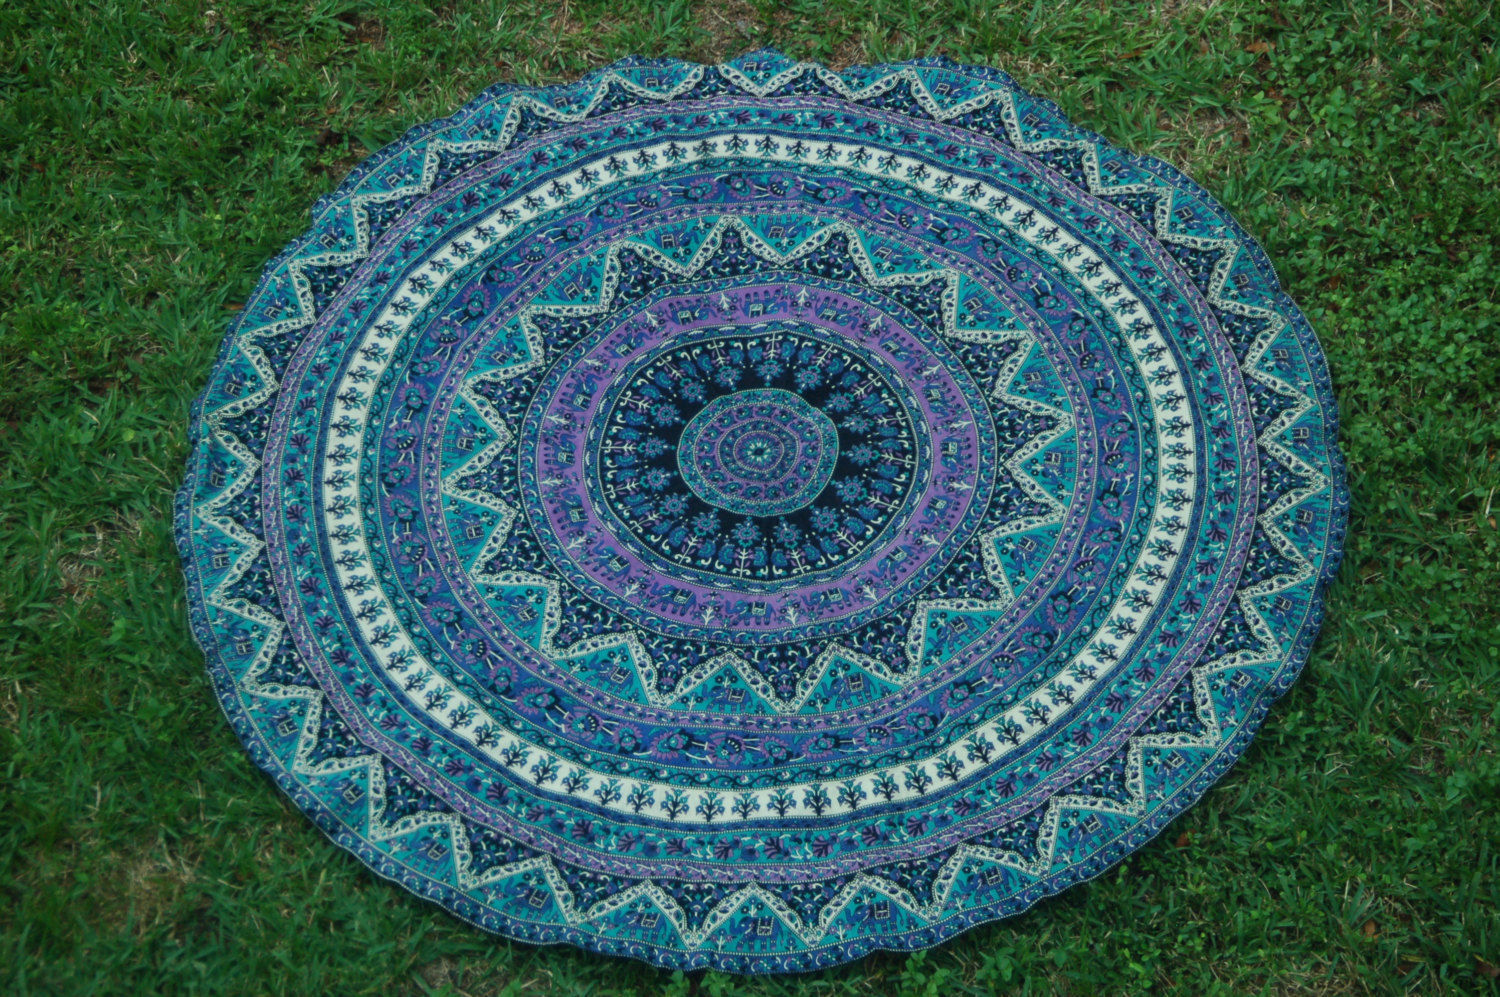 Purple Kerala Mandala Medallion Roundie Beach Throw